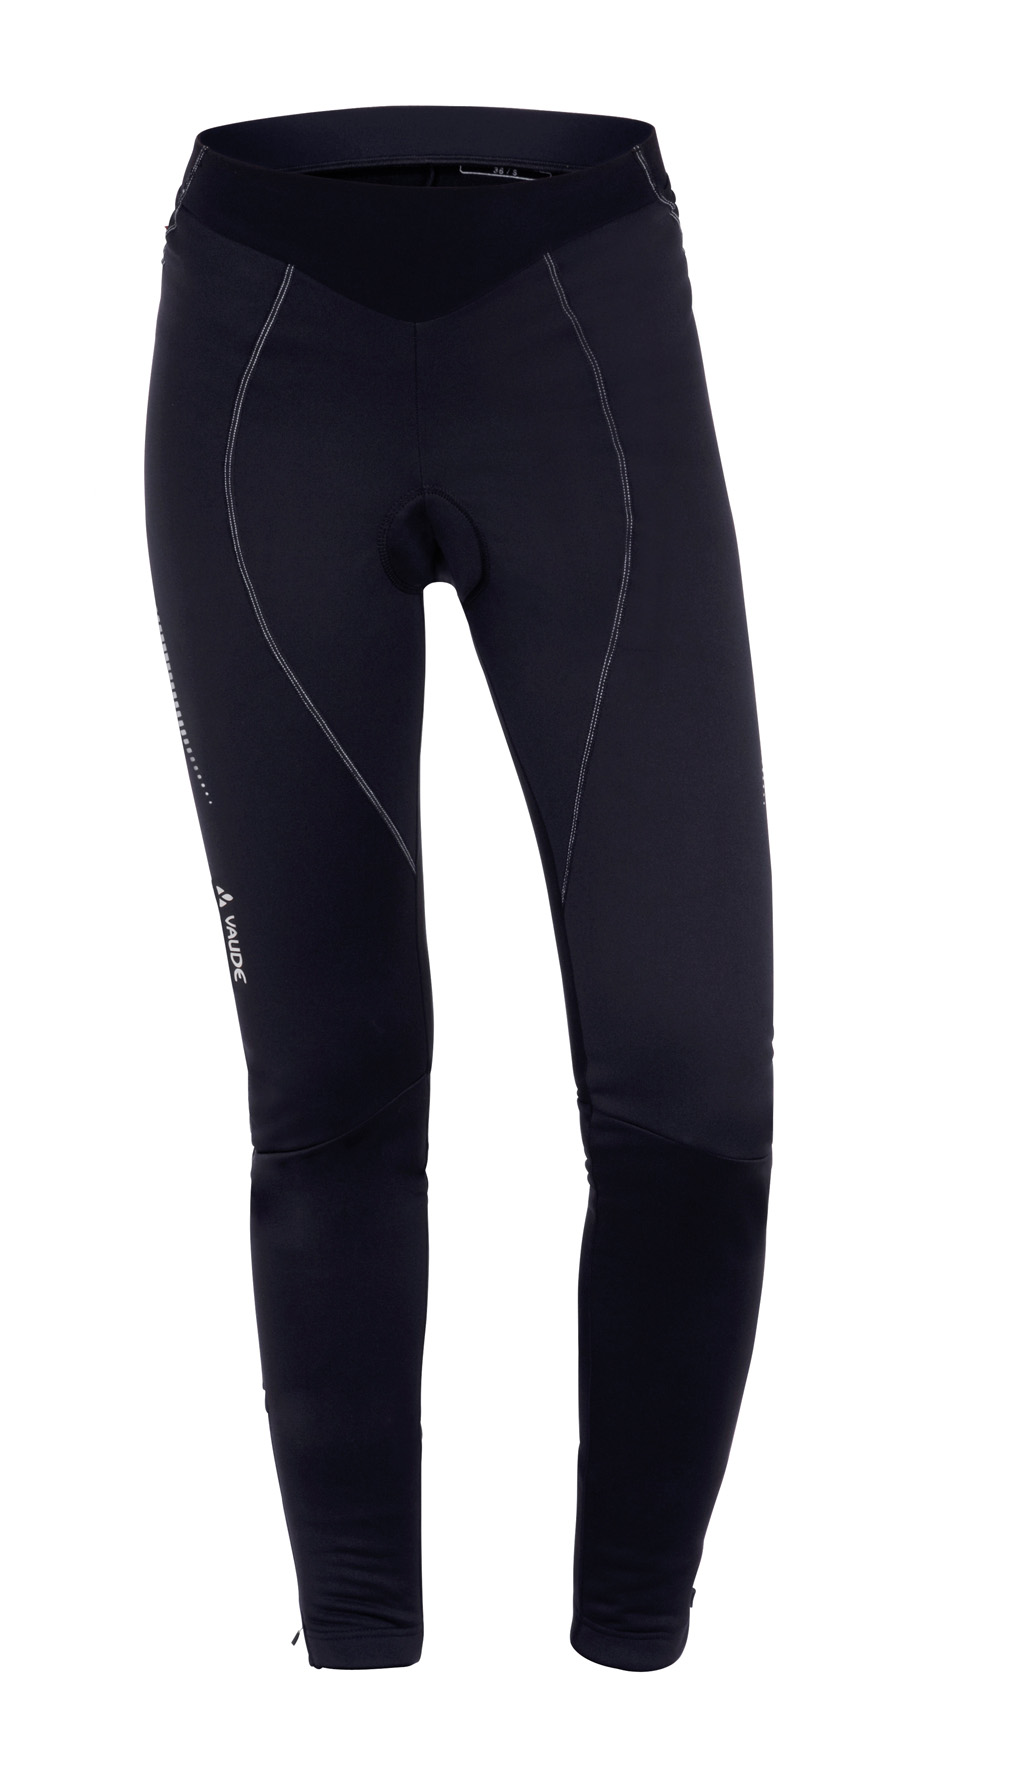 Women´s Advanced Warm Pants black Größe 36 - Women´s Advanced Warm Pants black Größe 36